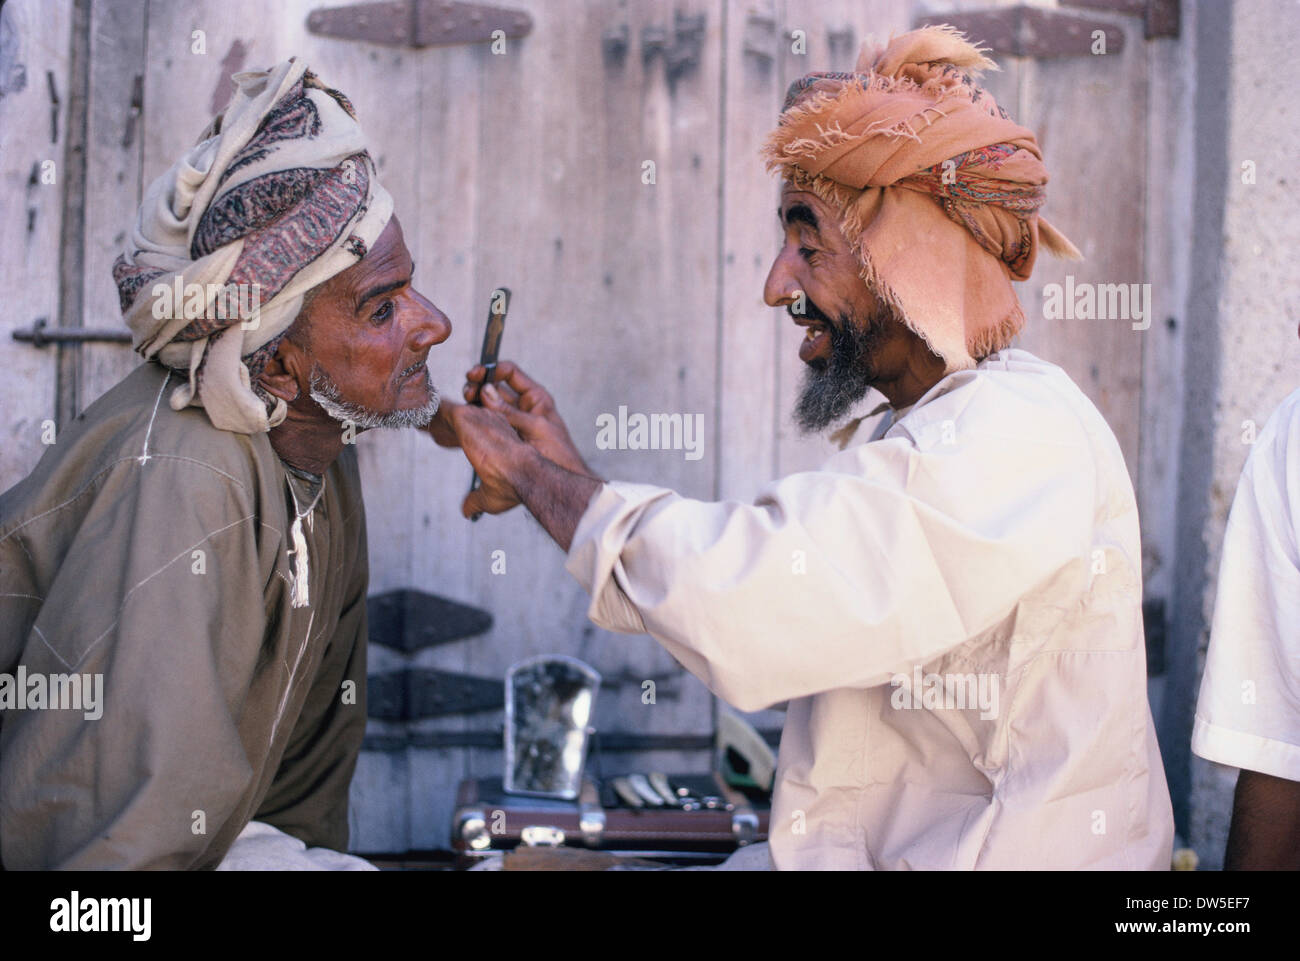 Coiffure omanais et client, Muscat, 1969. La culture traditionnelle omanaise et robe. Photo Stock